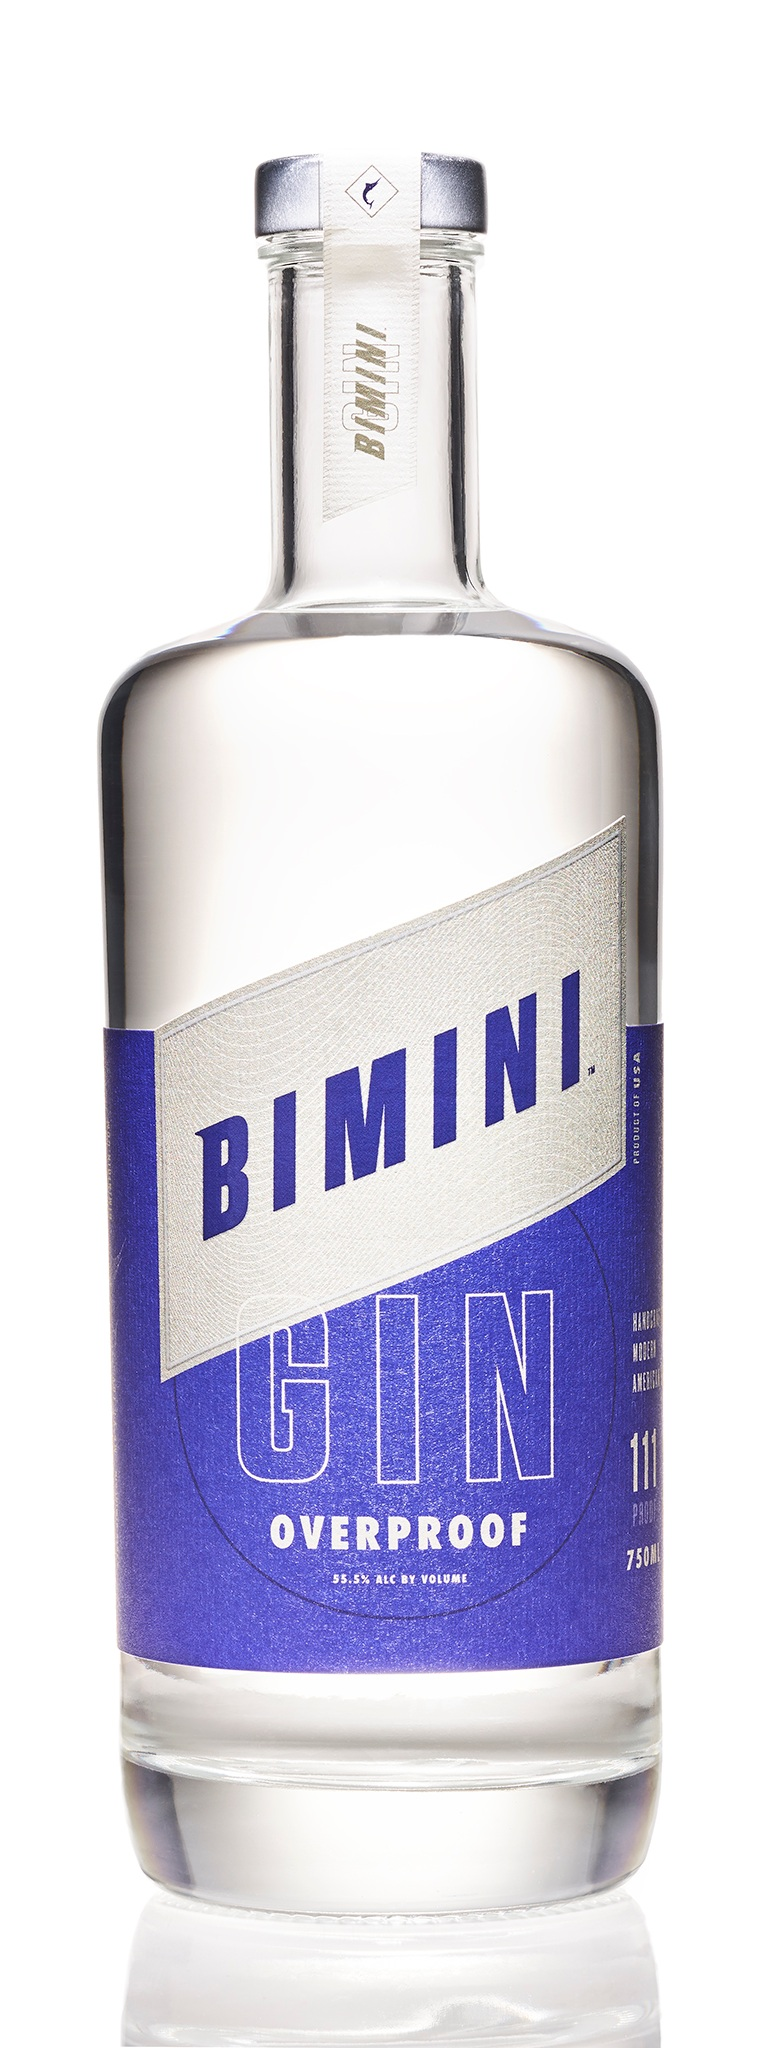 Bimini+Bottles+01743_final_sharpened_web.jpg